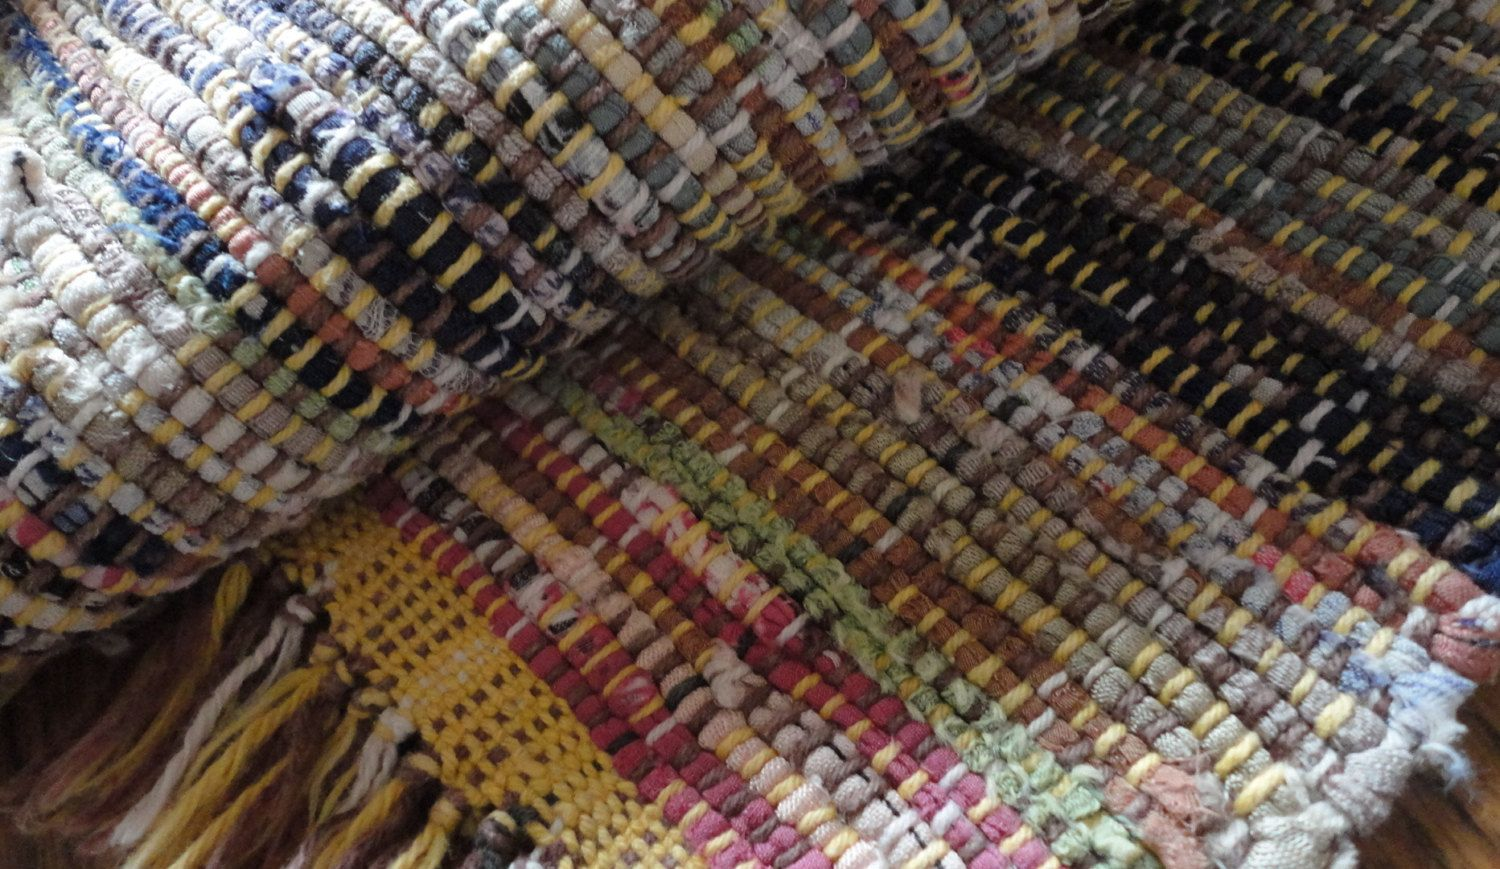 Vintage Hit Miss Hand Woven Rag Rug 25 X 53 Soft Throw Multi Color Loom Country Farmhouse Kitchen Ragrug Bedroom Floor Covering